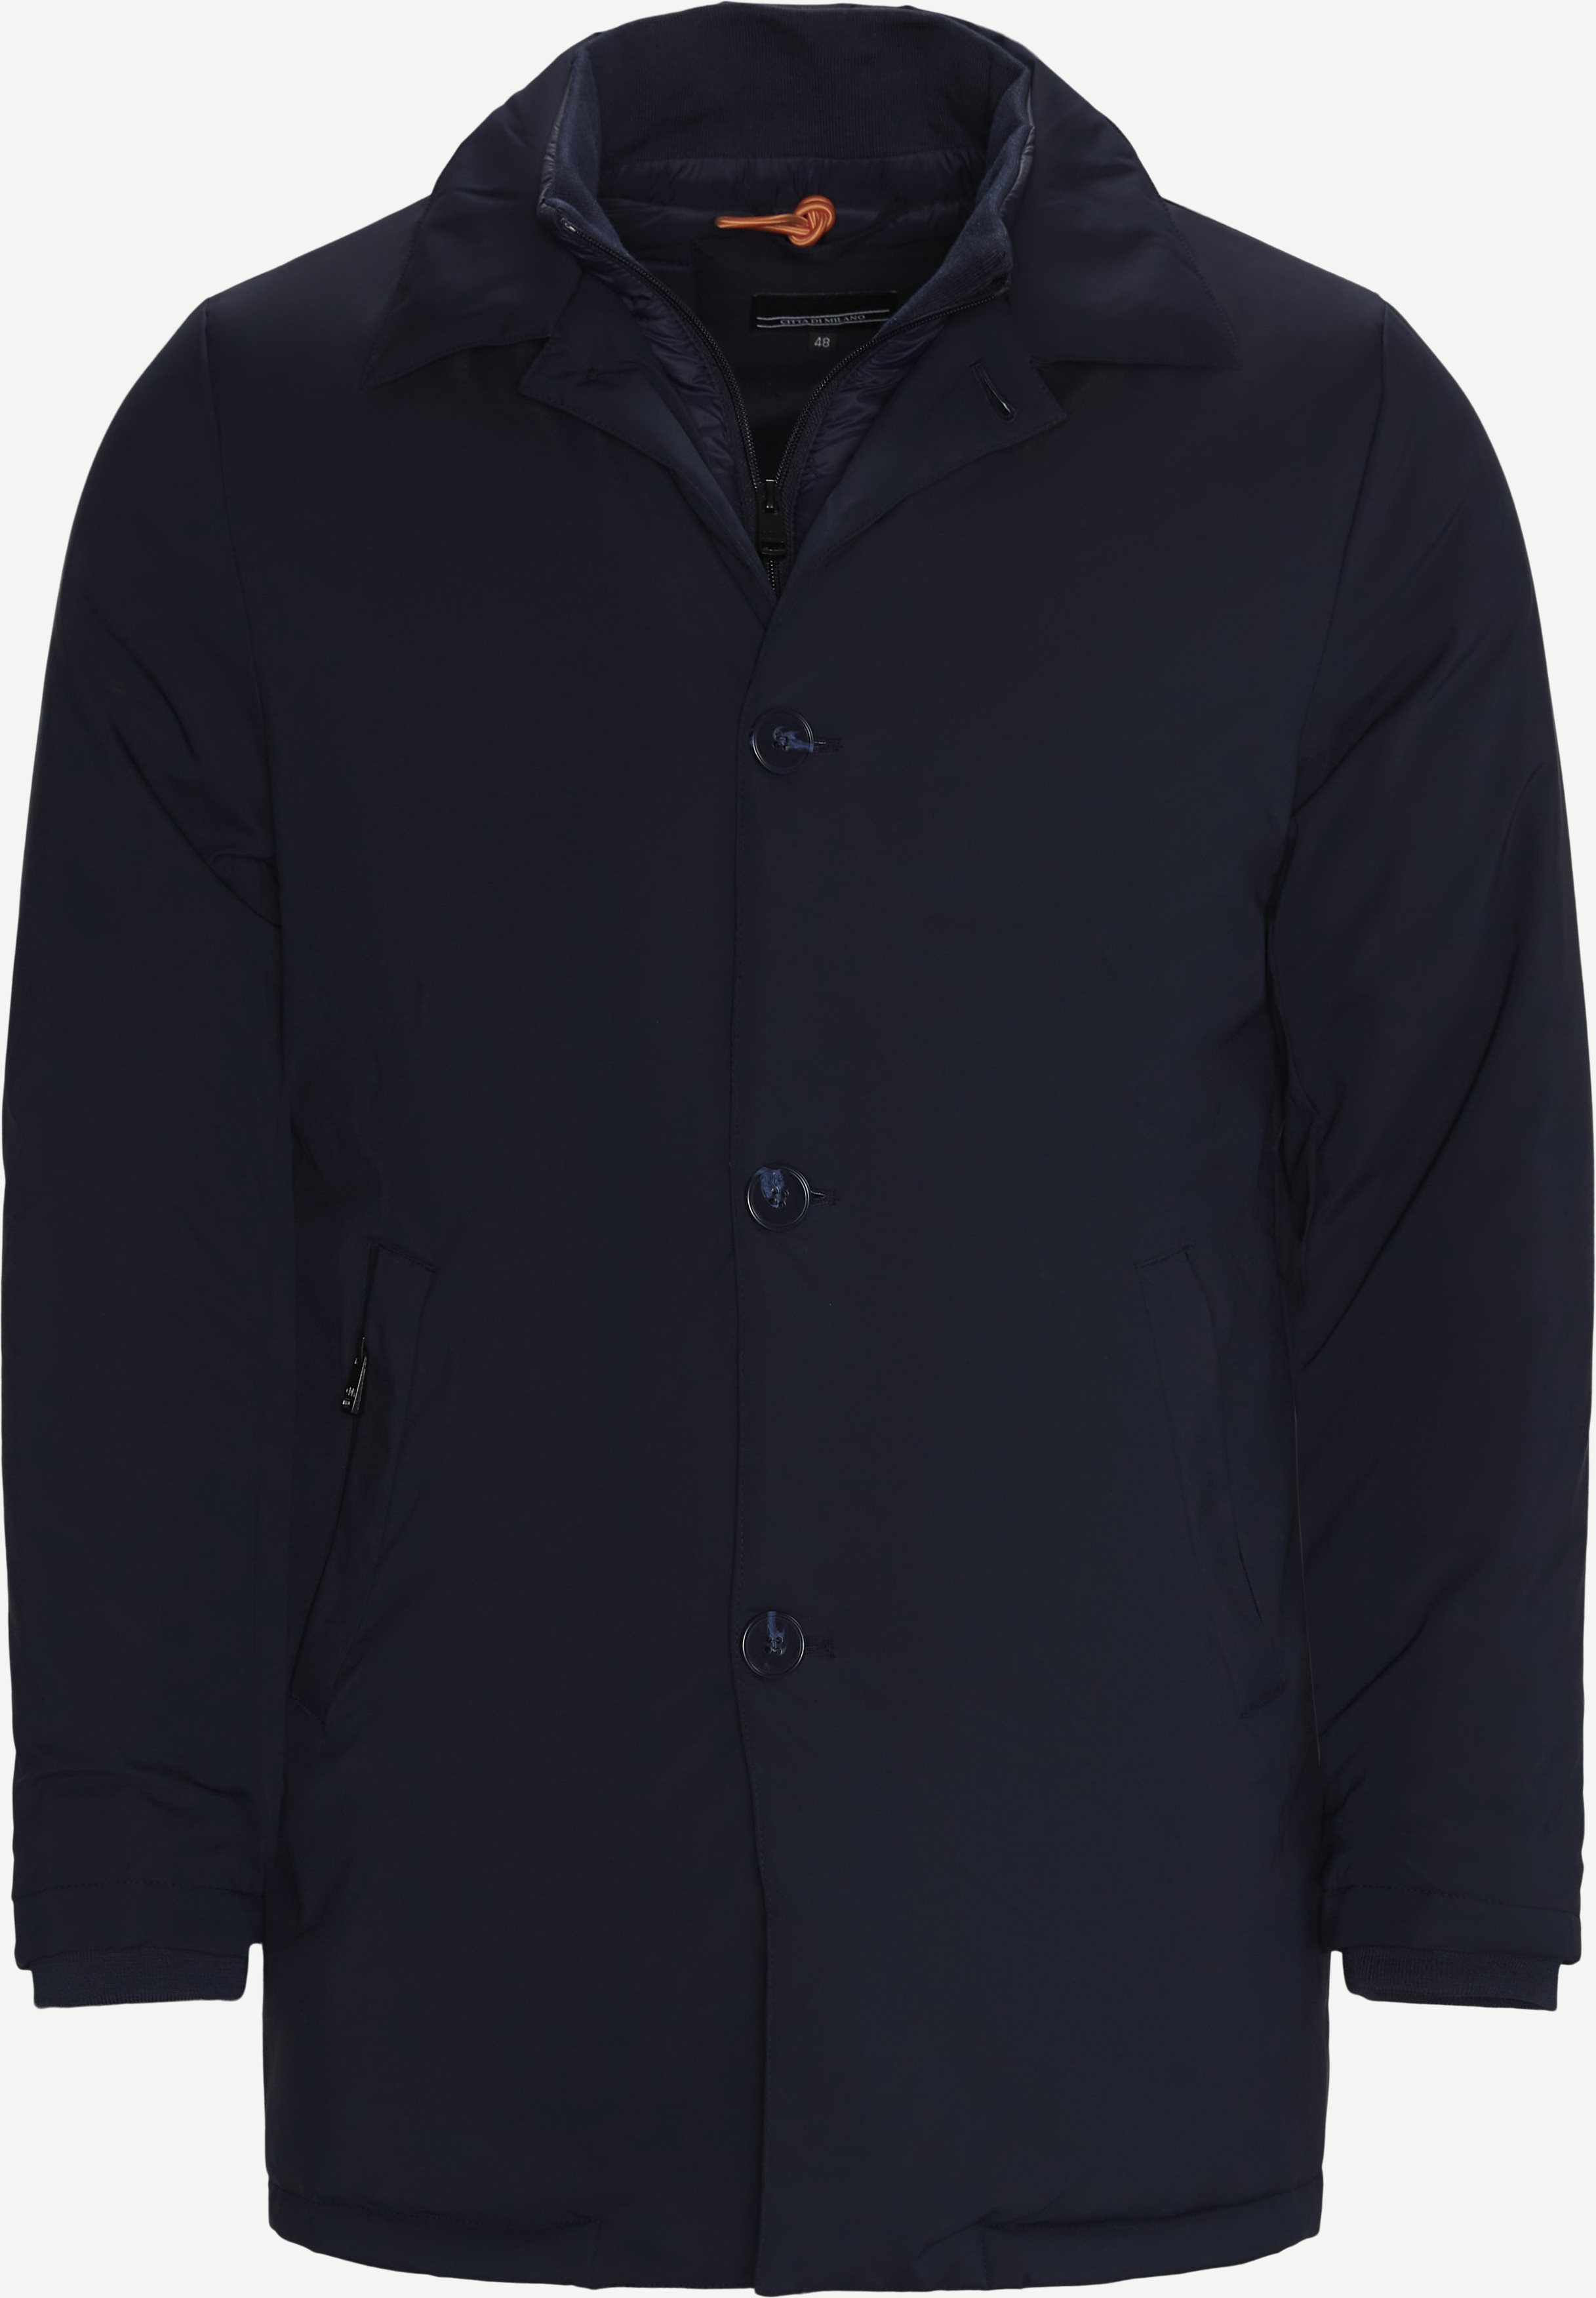 Manning Jacket - Jackets - Regular - Blue